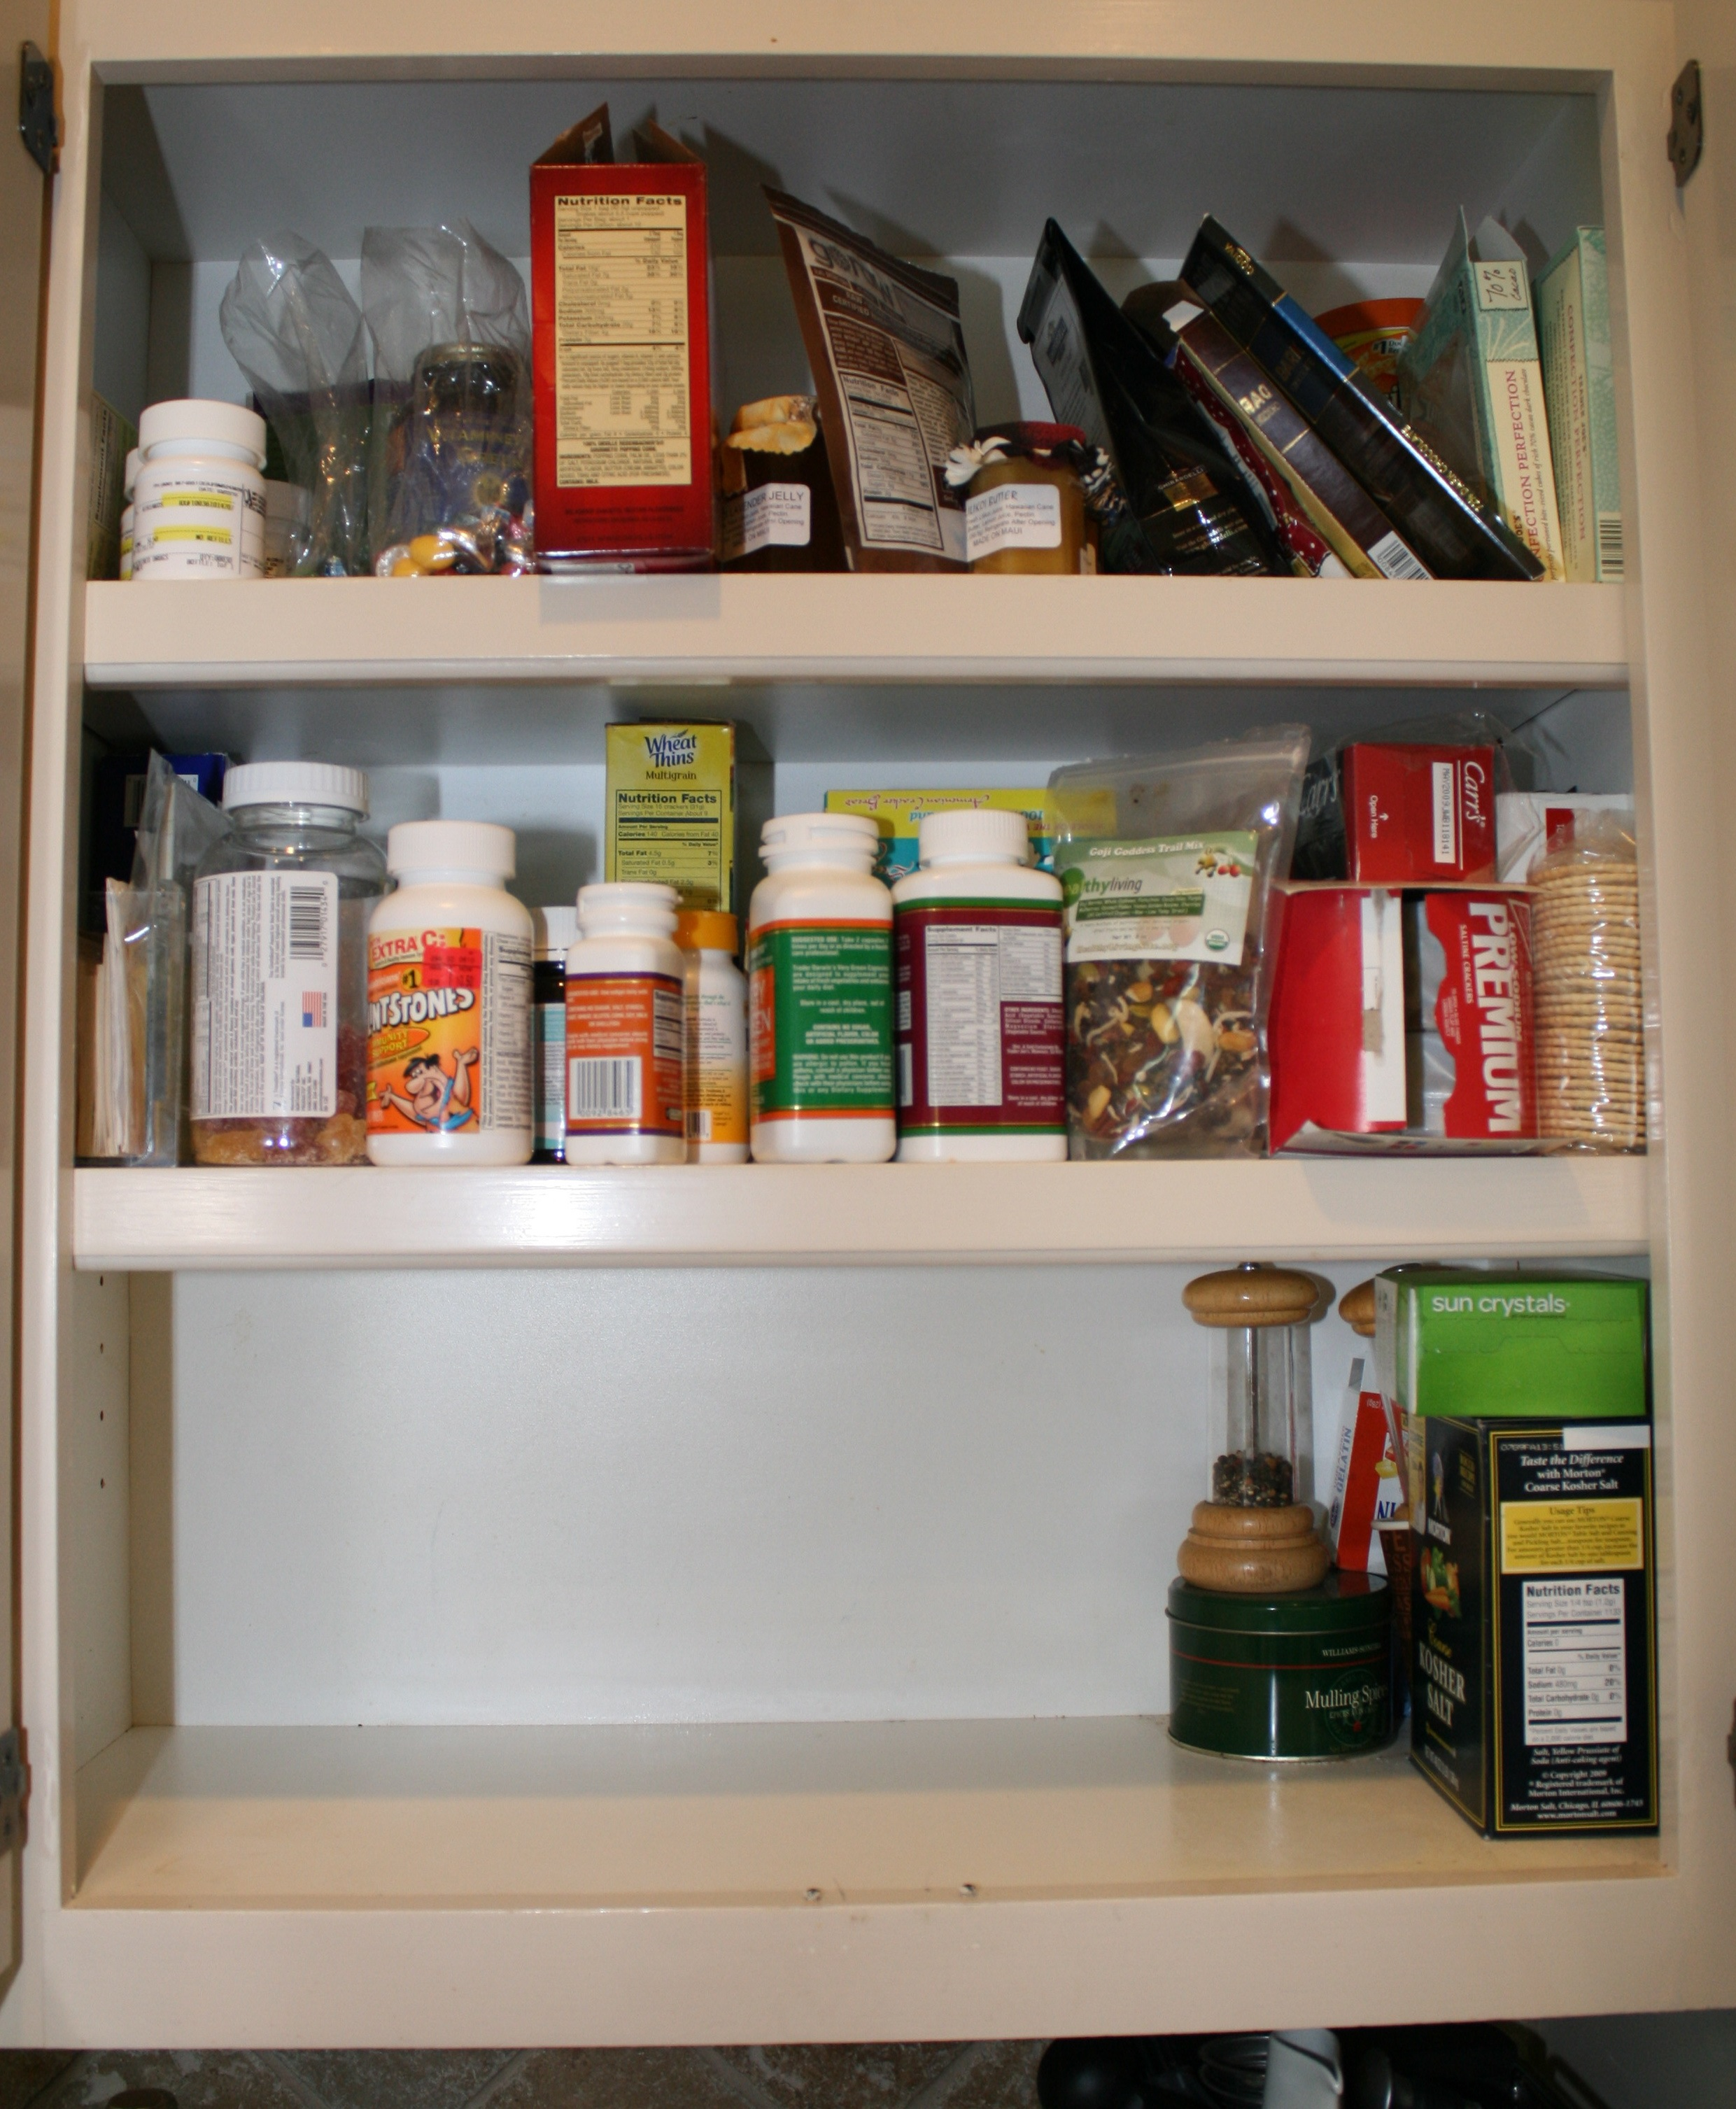 Messy Kitchen After Cooking: Small Organizing Frenzy